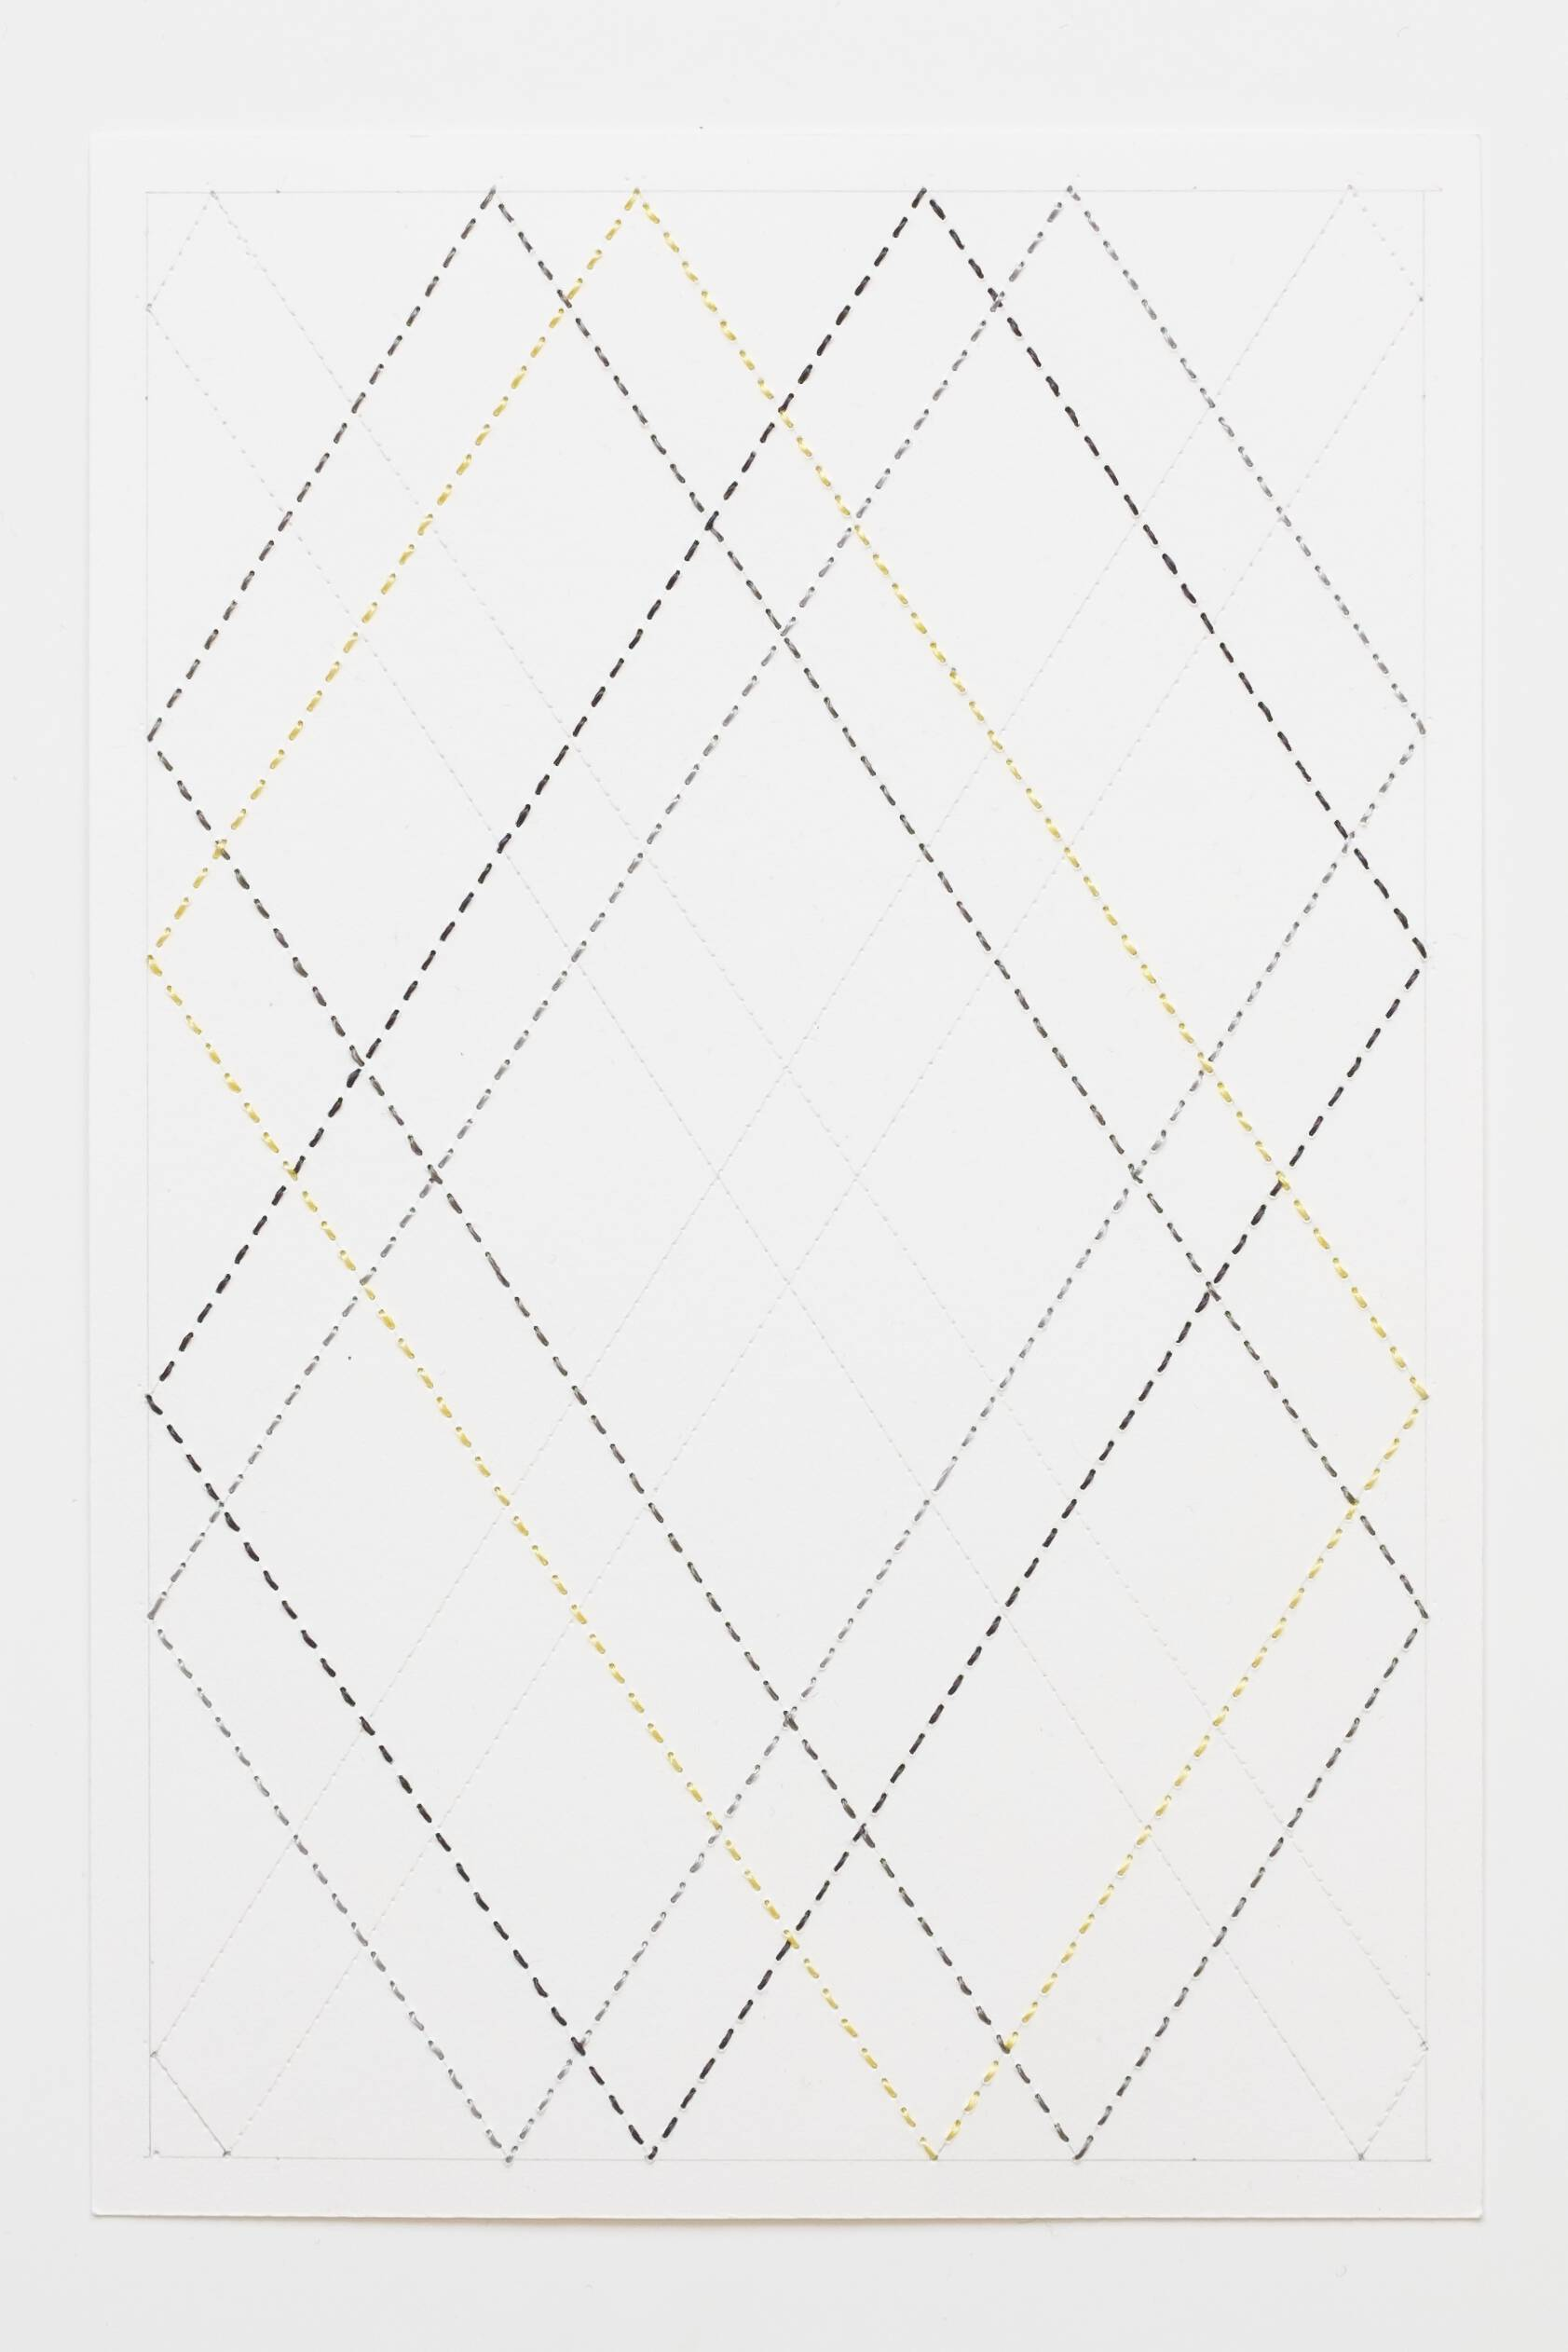 Quilted Composition [white // diamonds 1], Hand-embroidered silk thread, pencil, and coloured pencil on paper, 2019